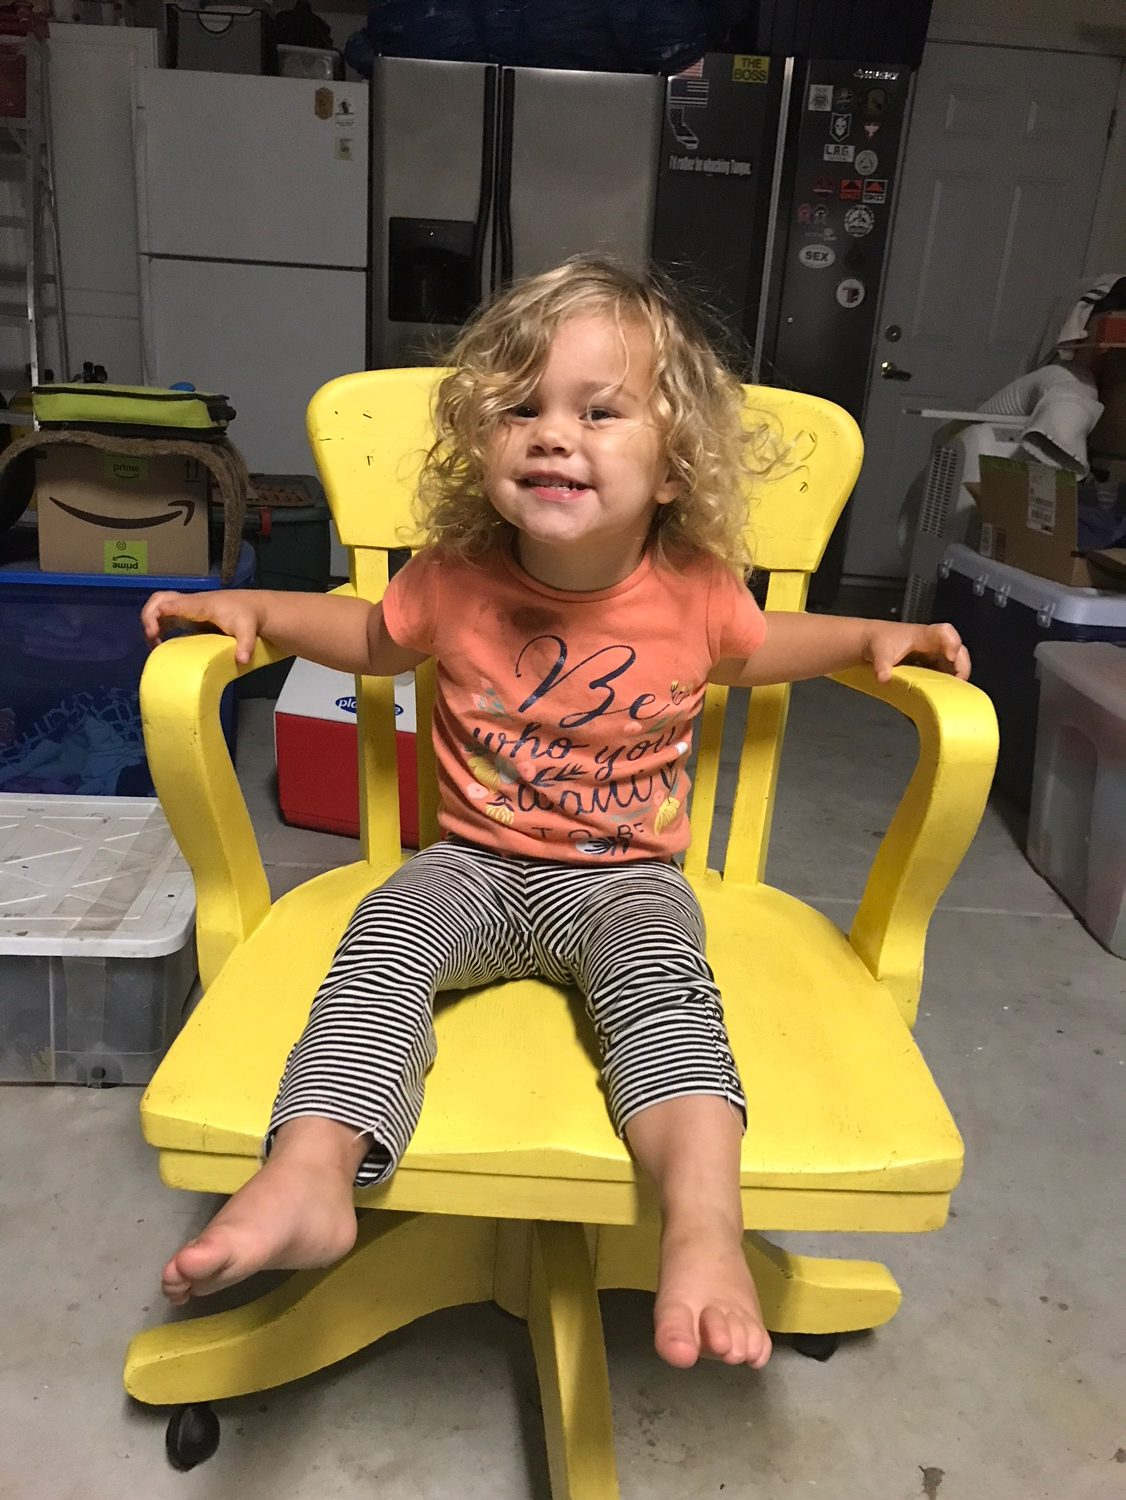 curly haired girl in yellow chair